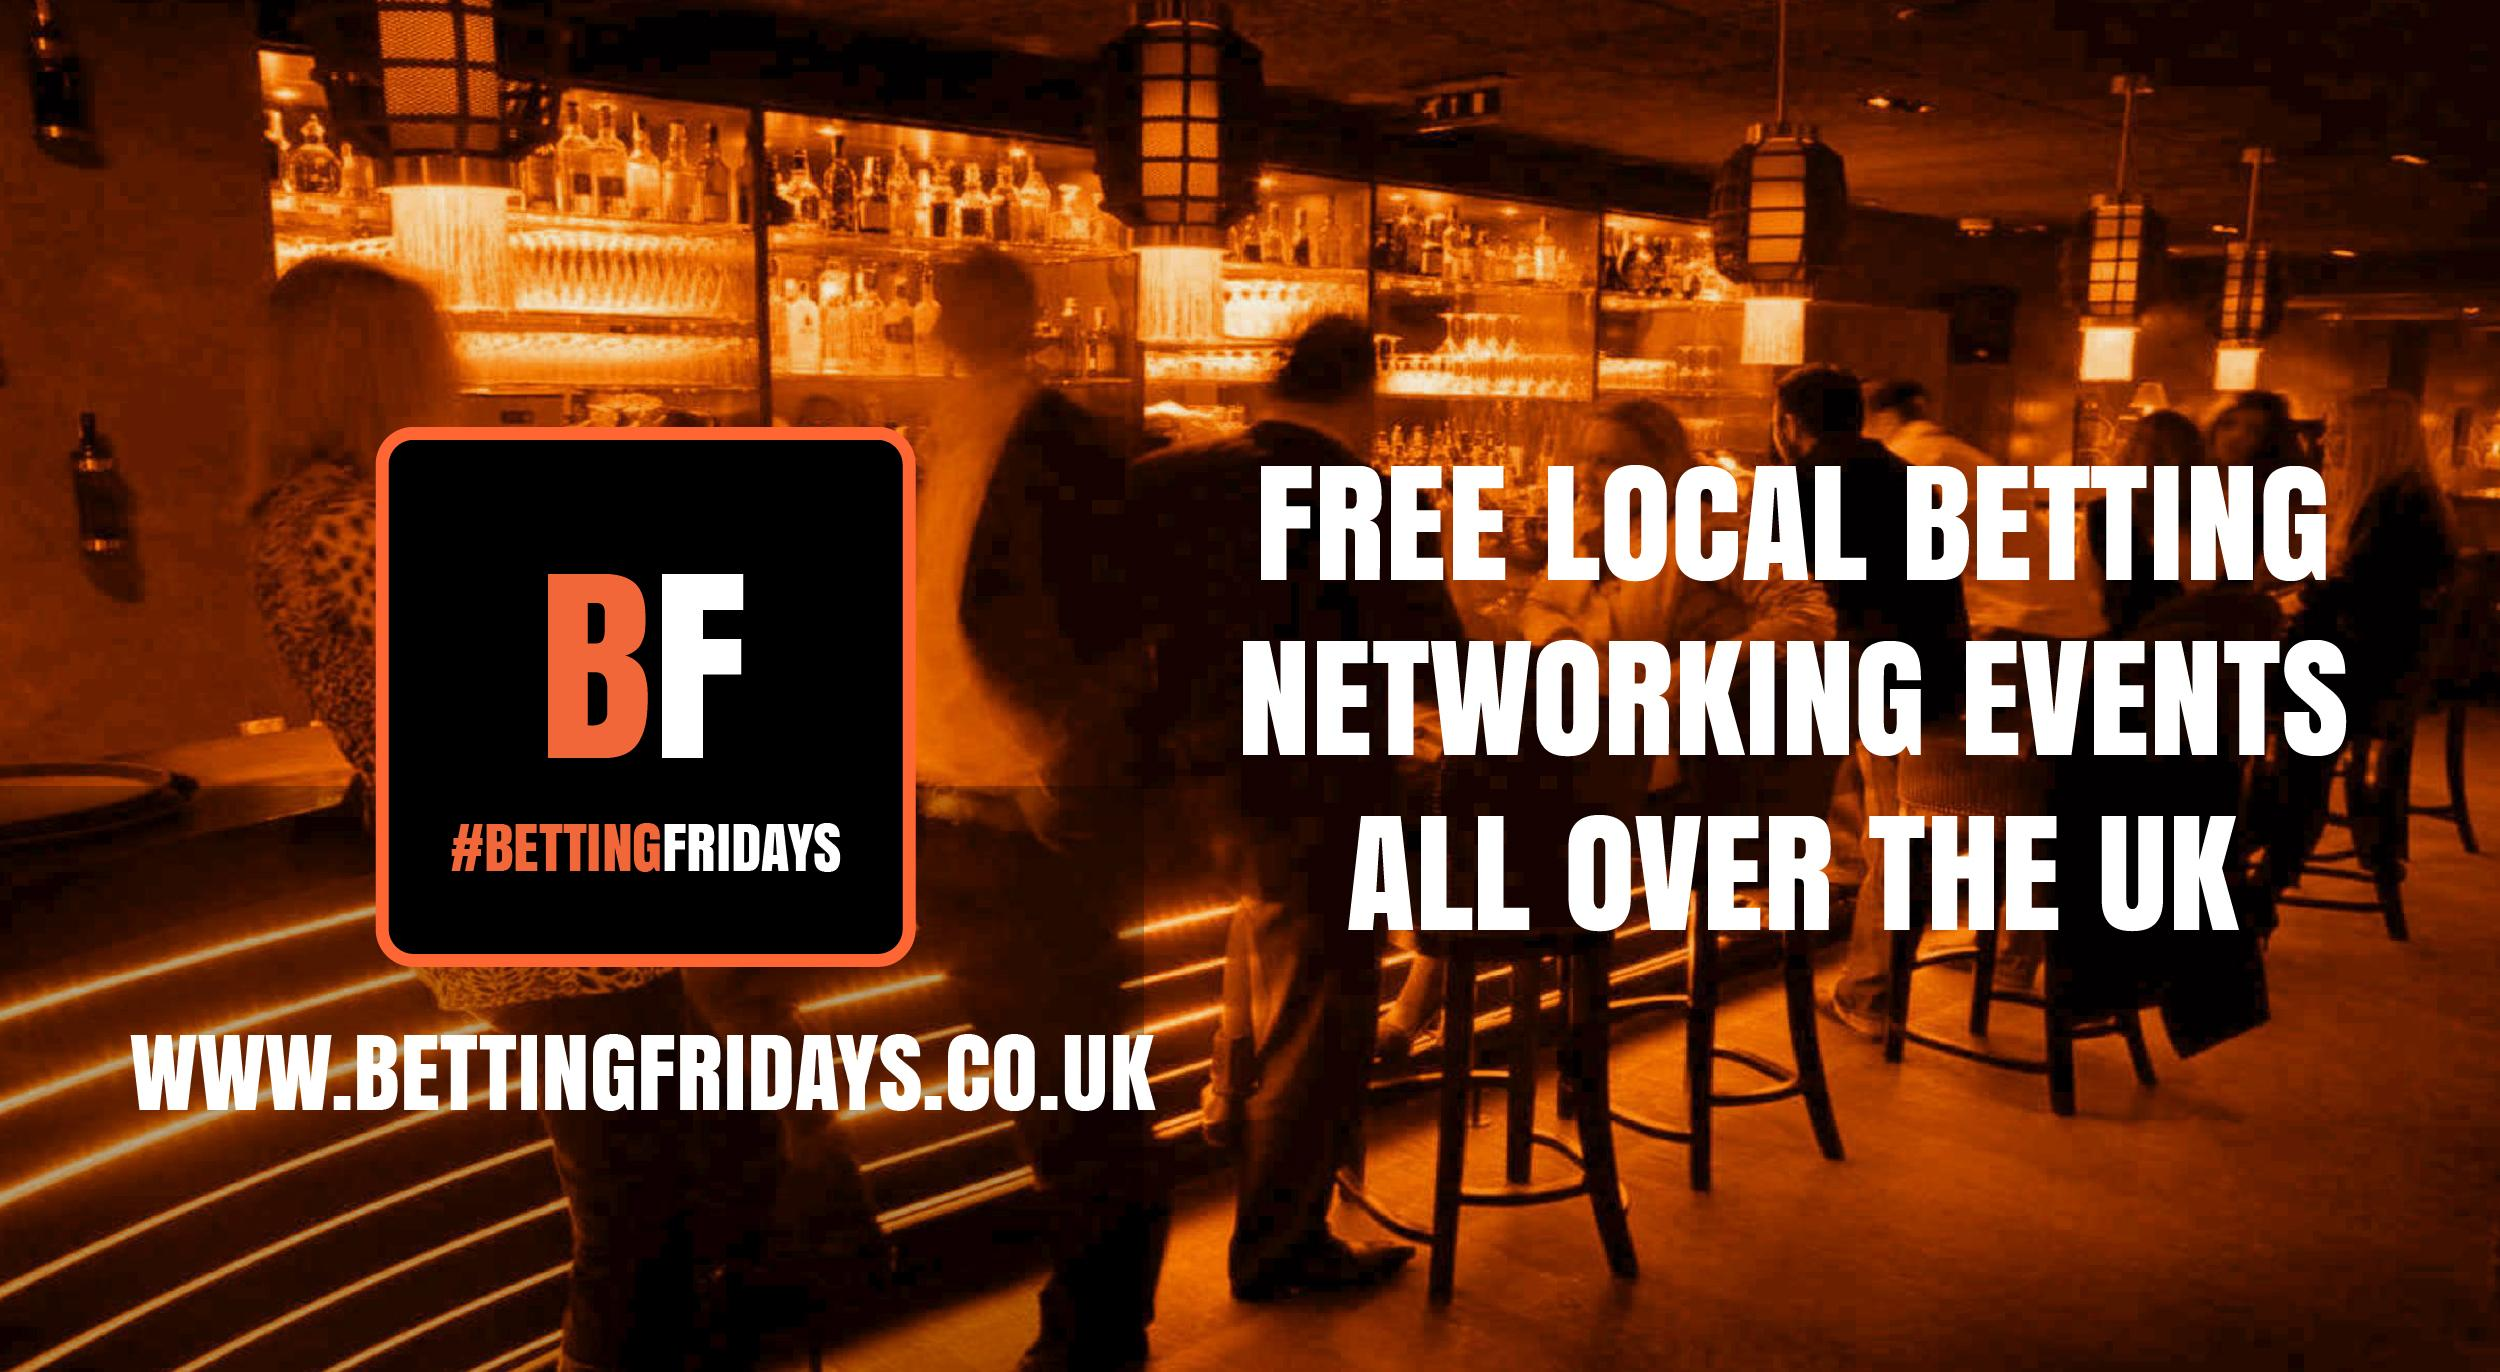 Betting Fridays! Free betting networking event in Bournemouth